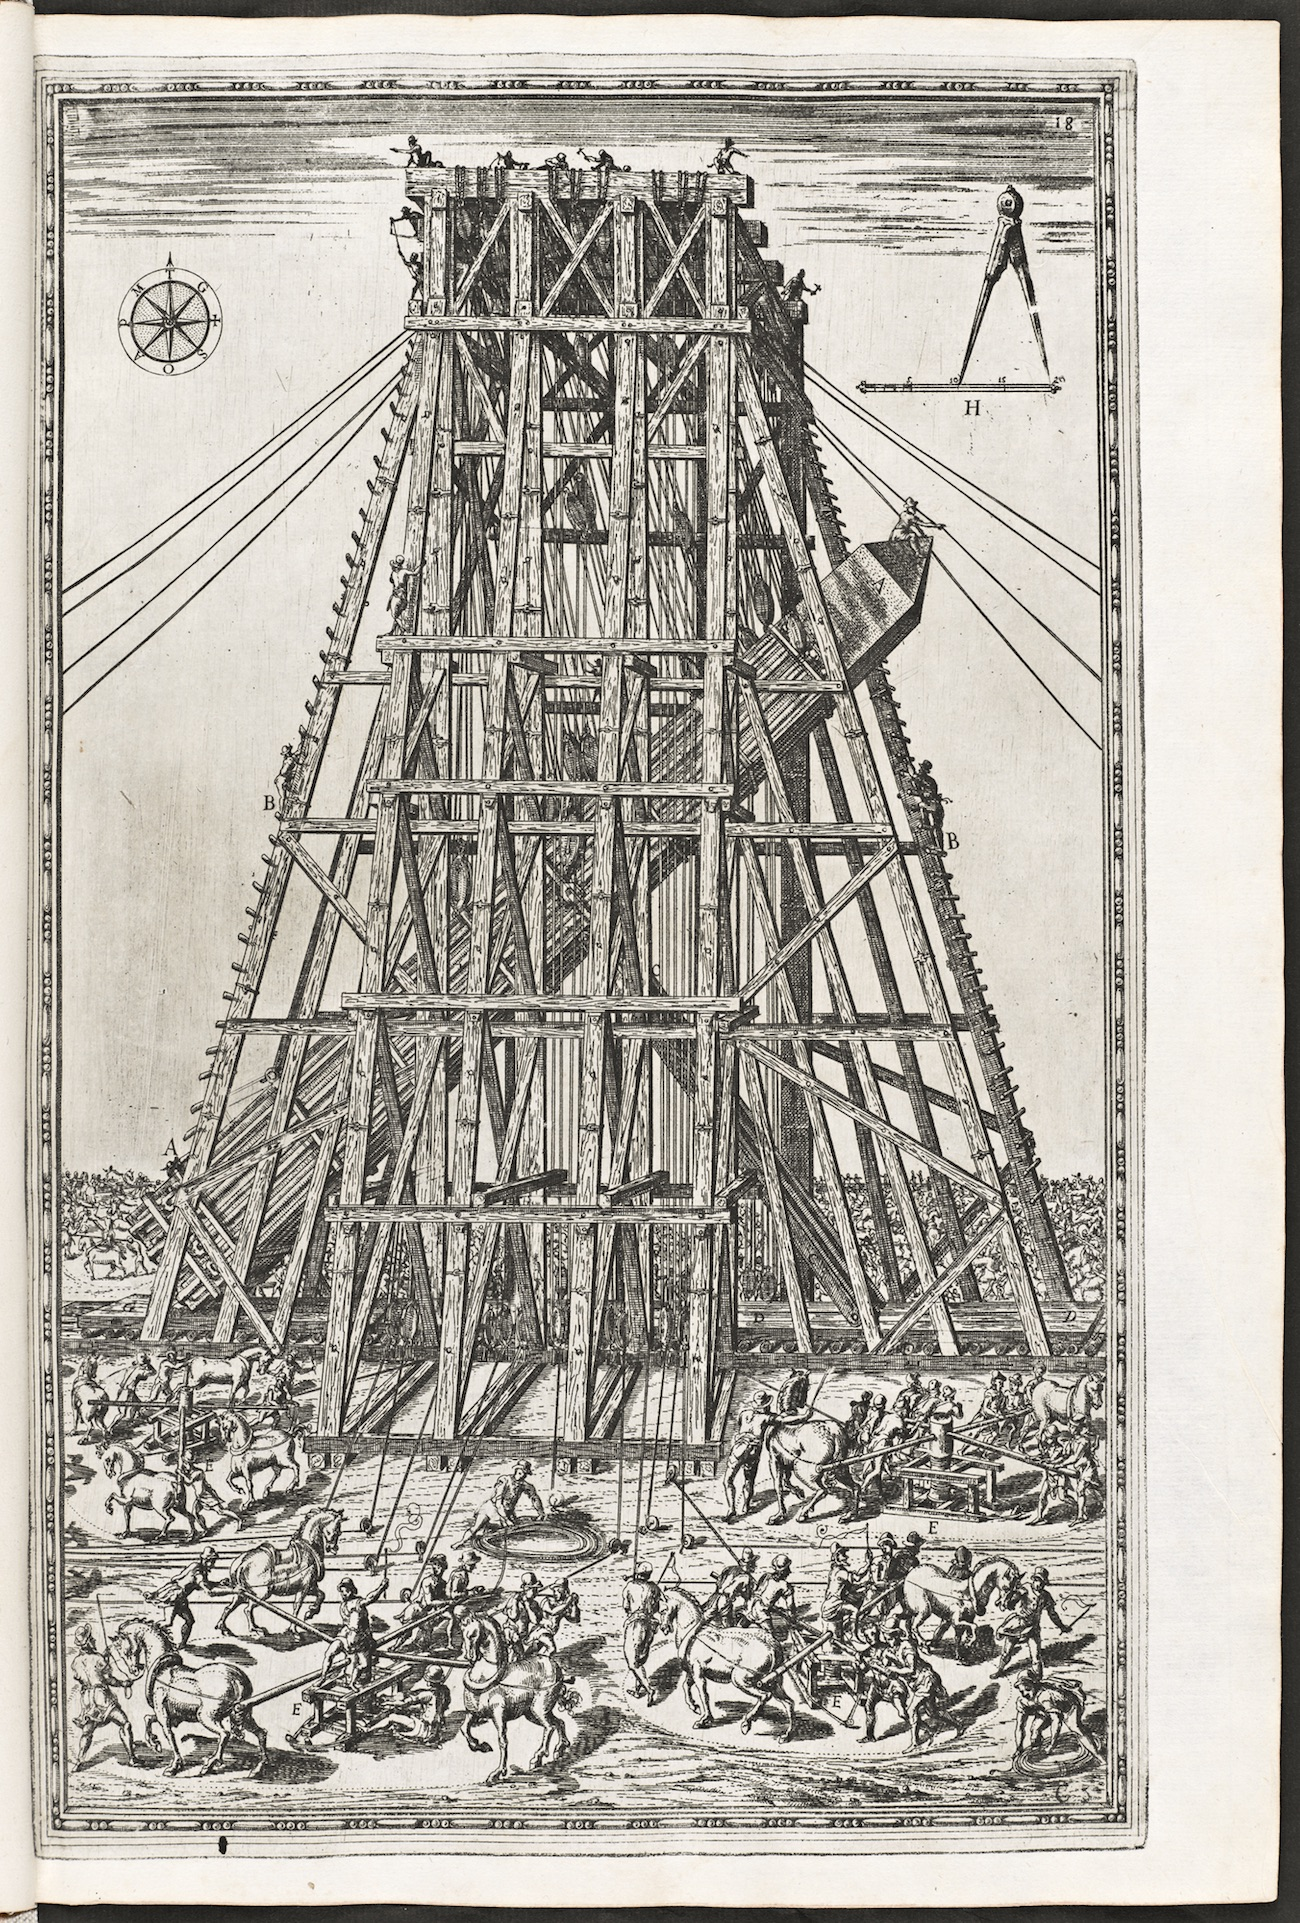 Engraving showing a massive wooden scaffold used to hoist an ancient Egyptian obelisk in early modern Rome